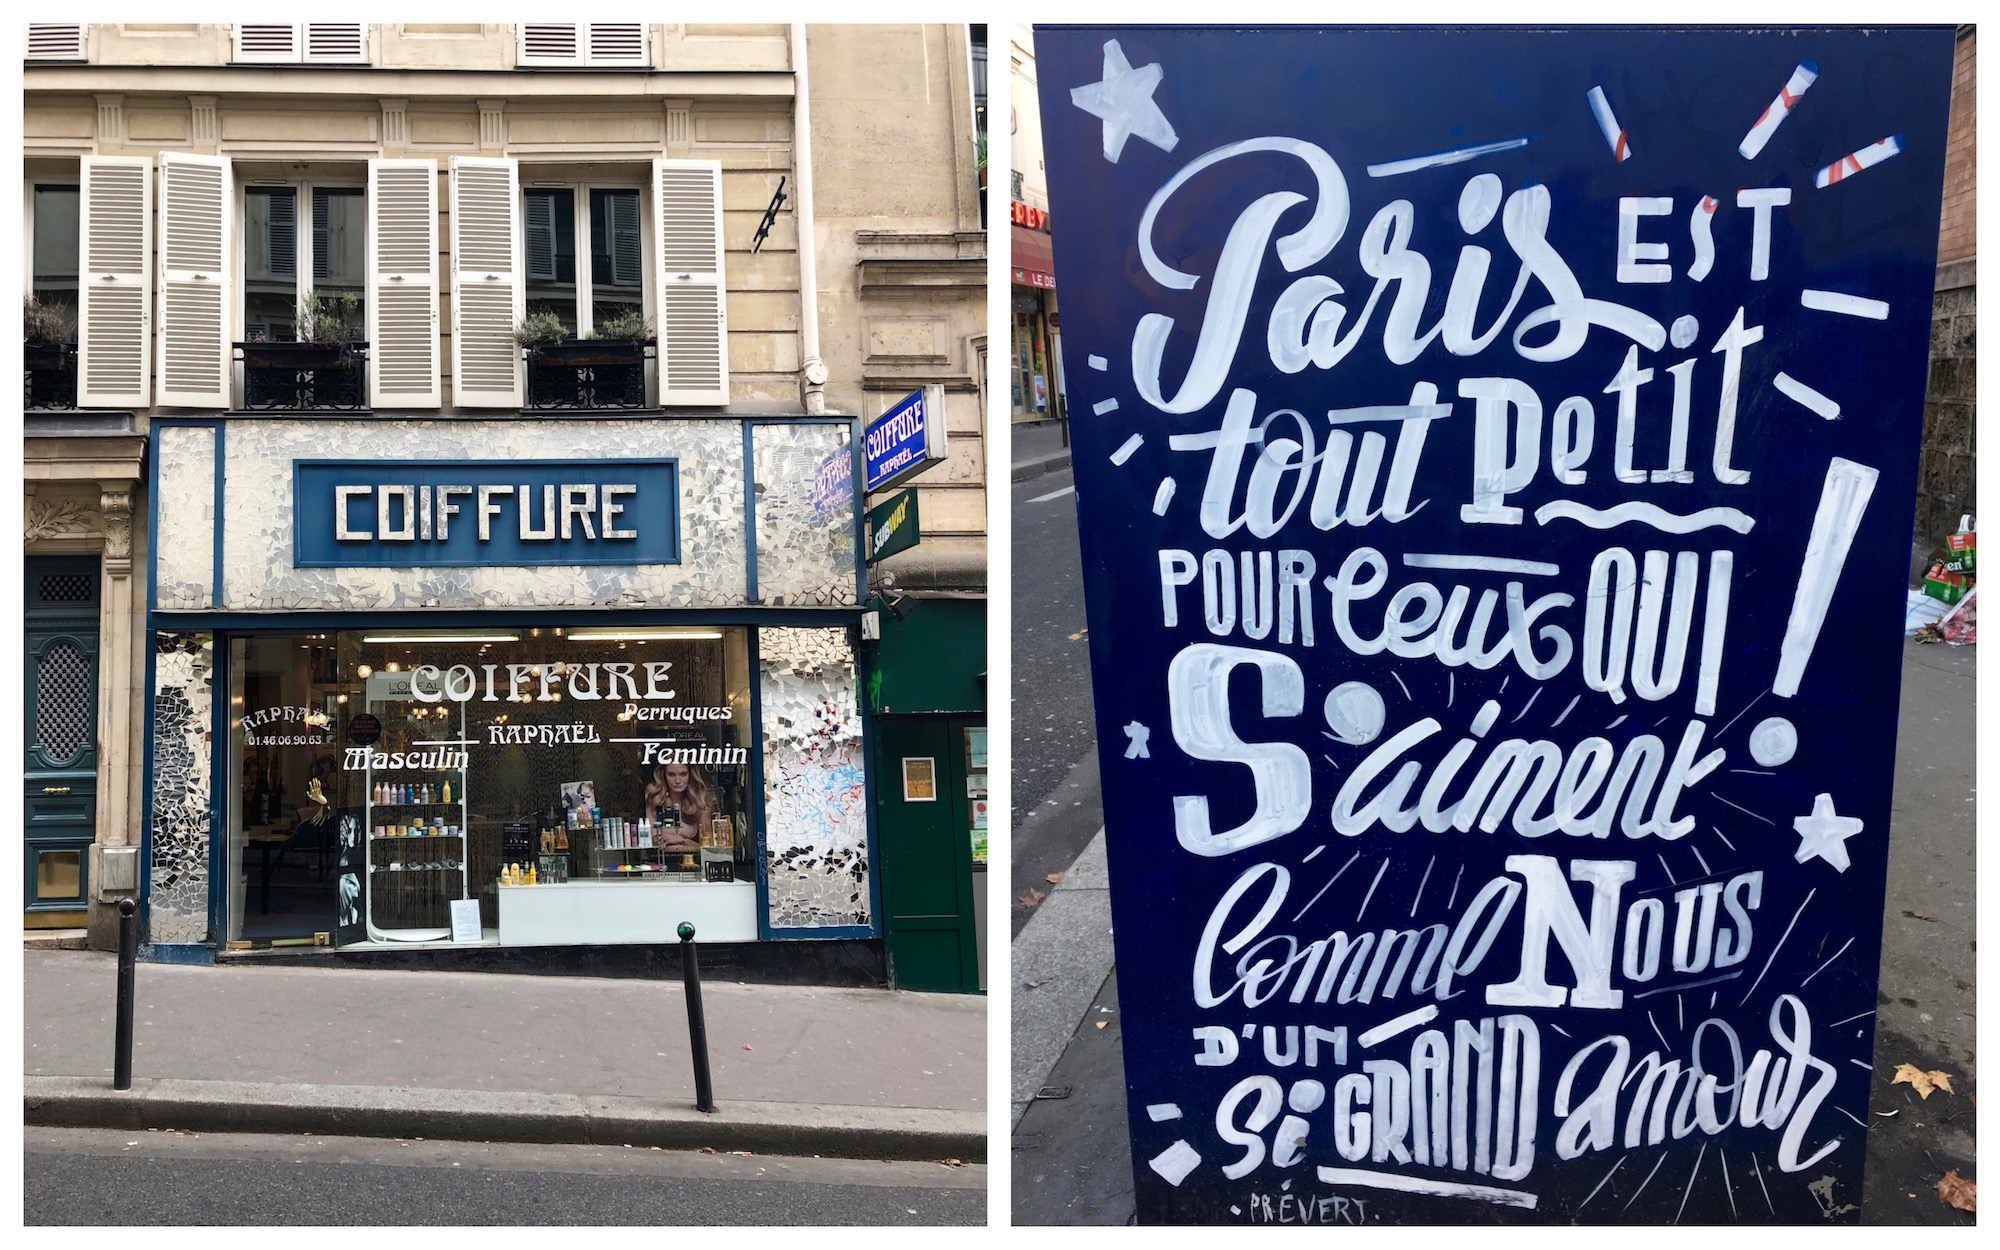 HiP Paris Blog tells you about one writer's experience learning French in Paris